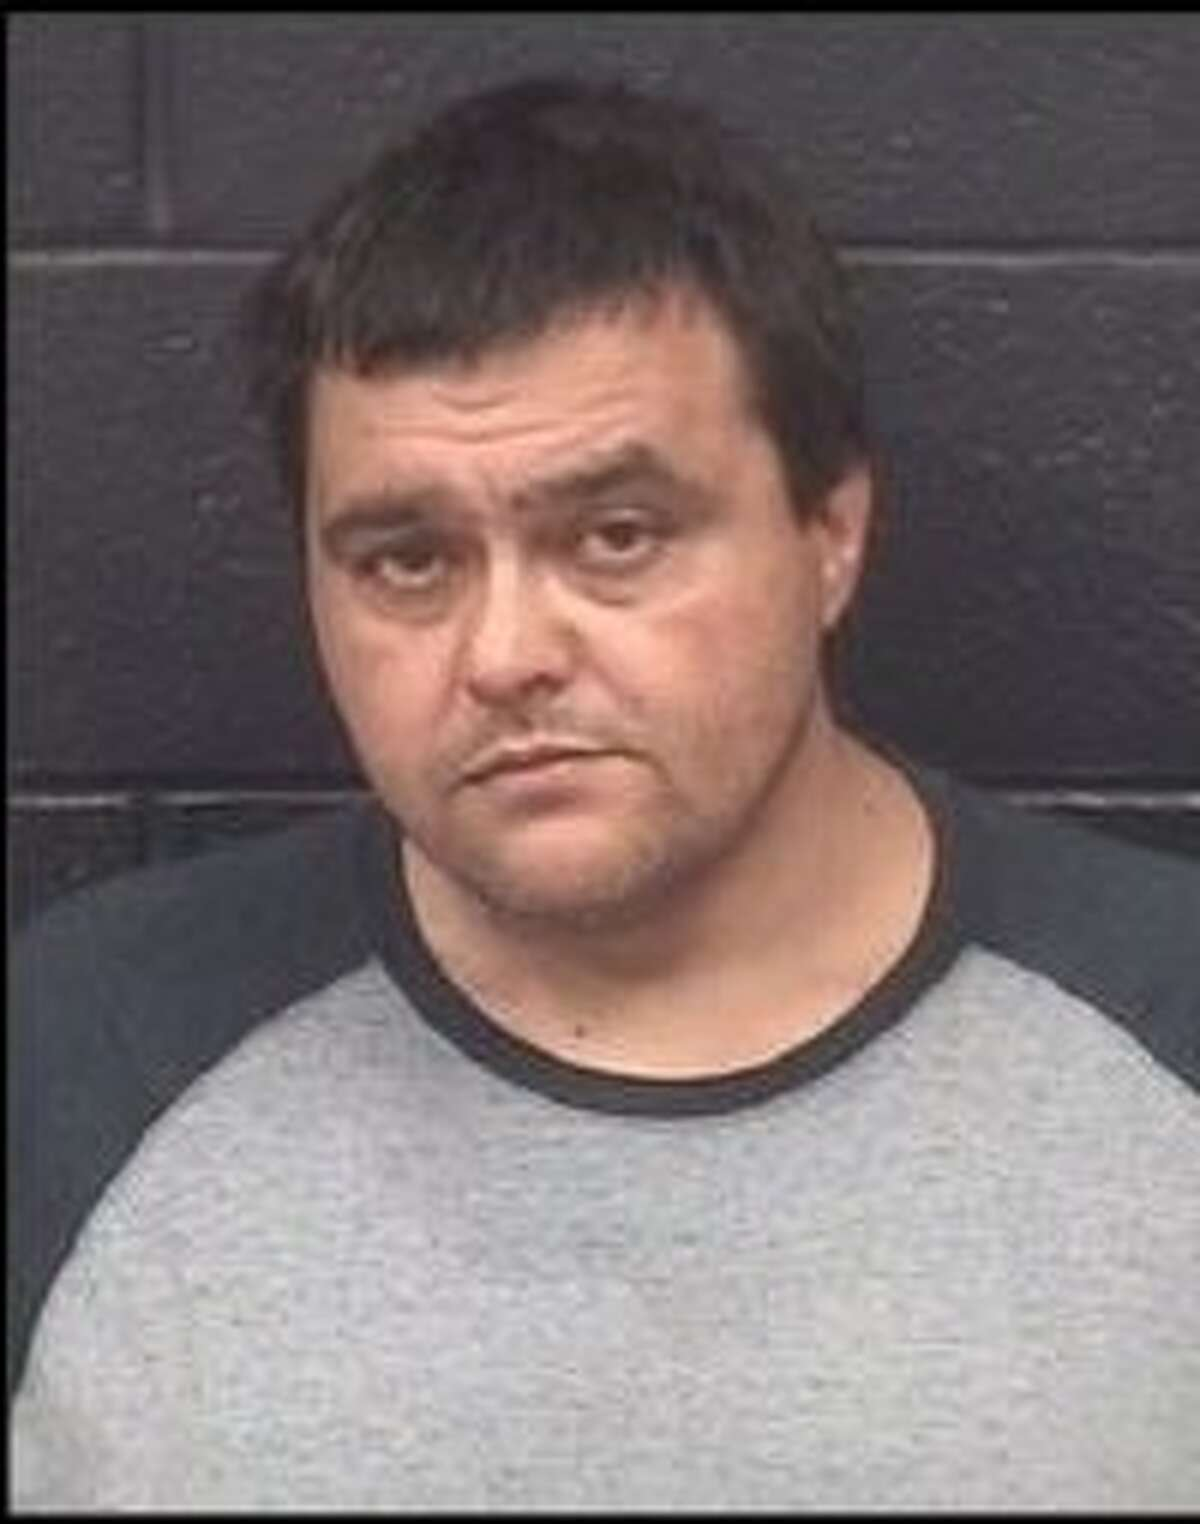 Jeremiah Jonathan Hudak, 43, was arrested as part of a Laredo Police Department operation targeting online drug sales.